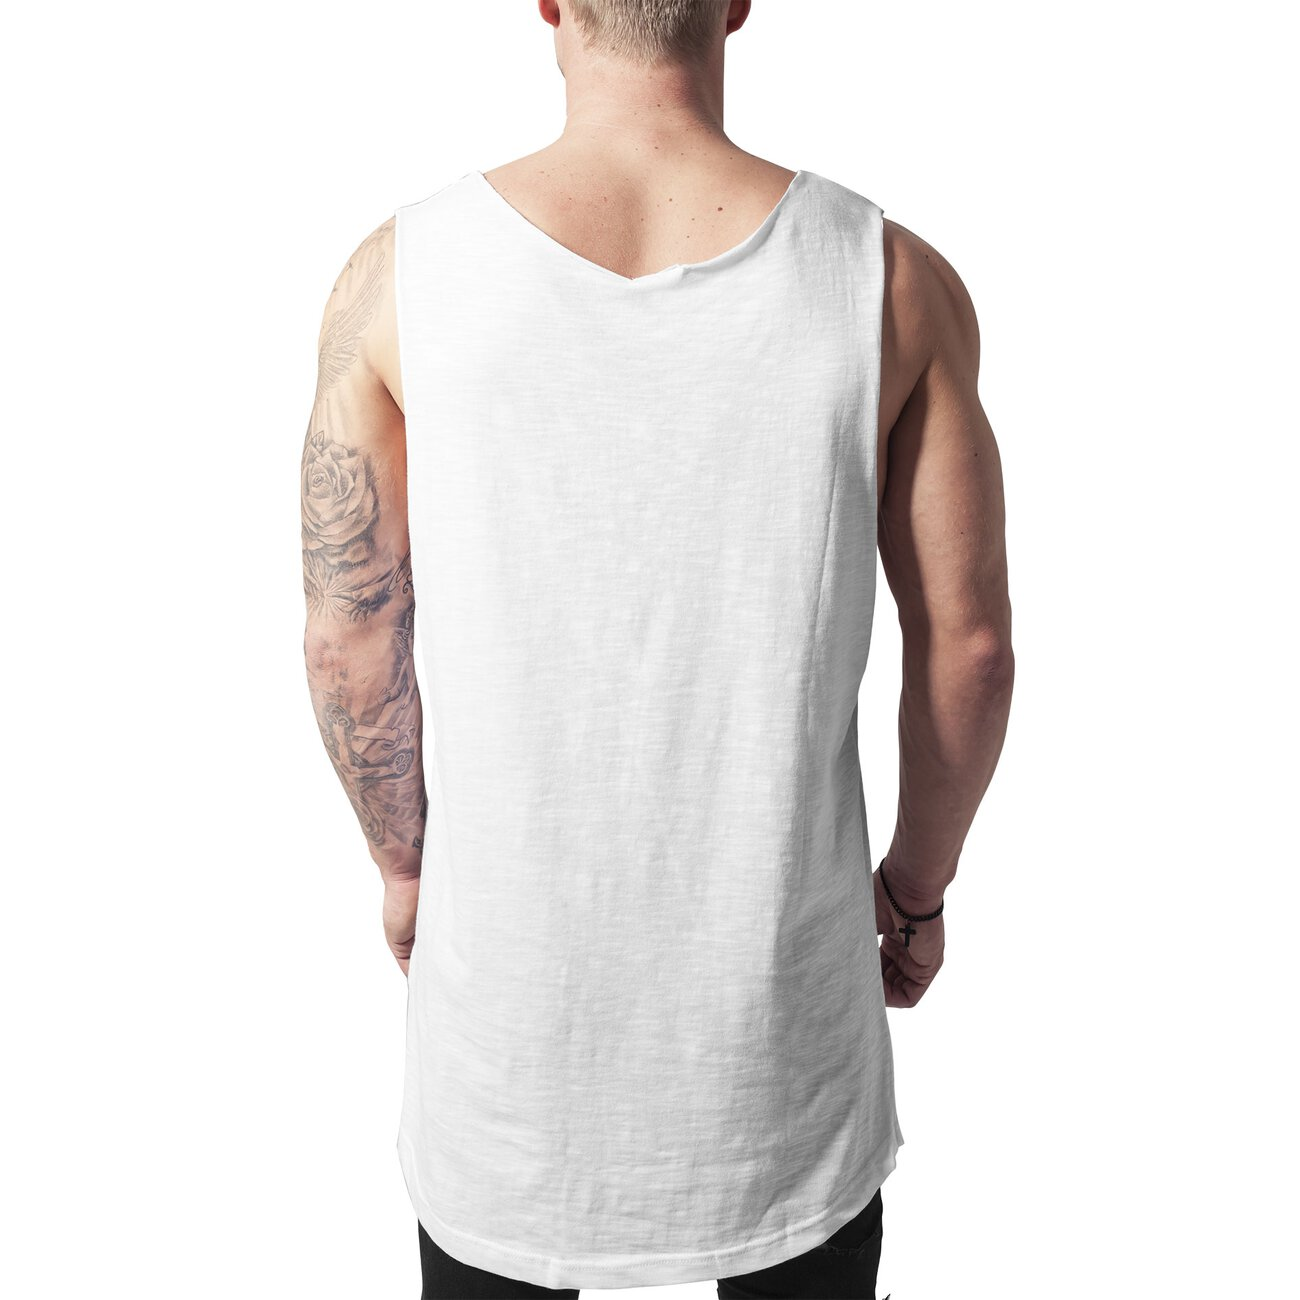 Urban Classics Tank-Top Long Style Loose Fit Singlet TB-964